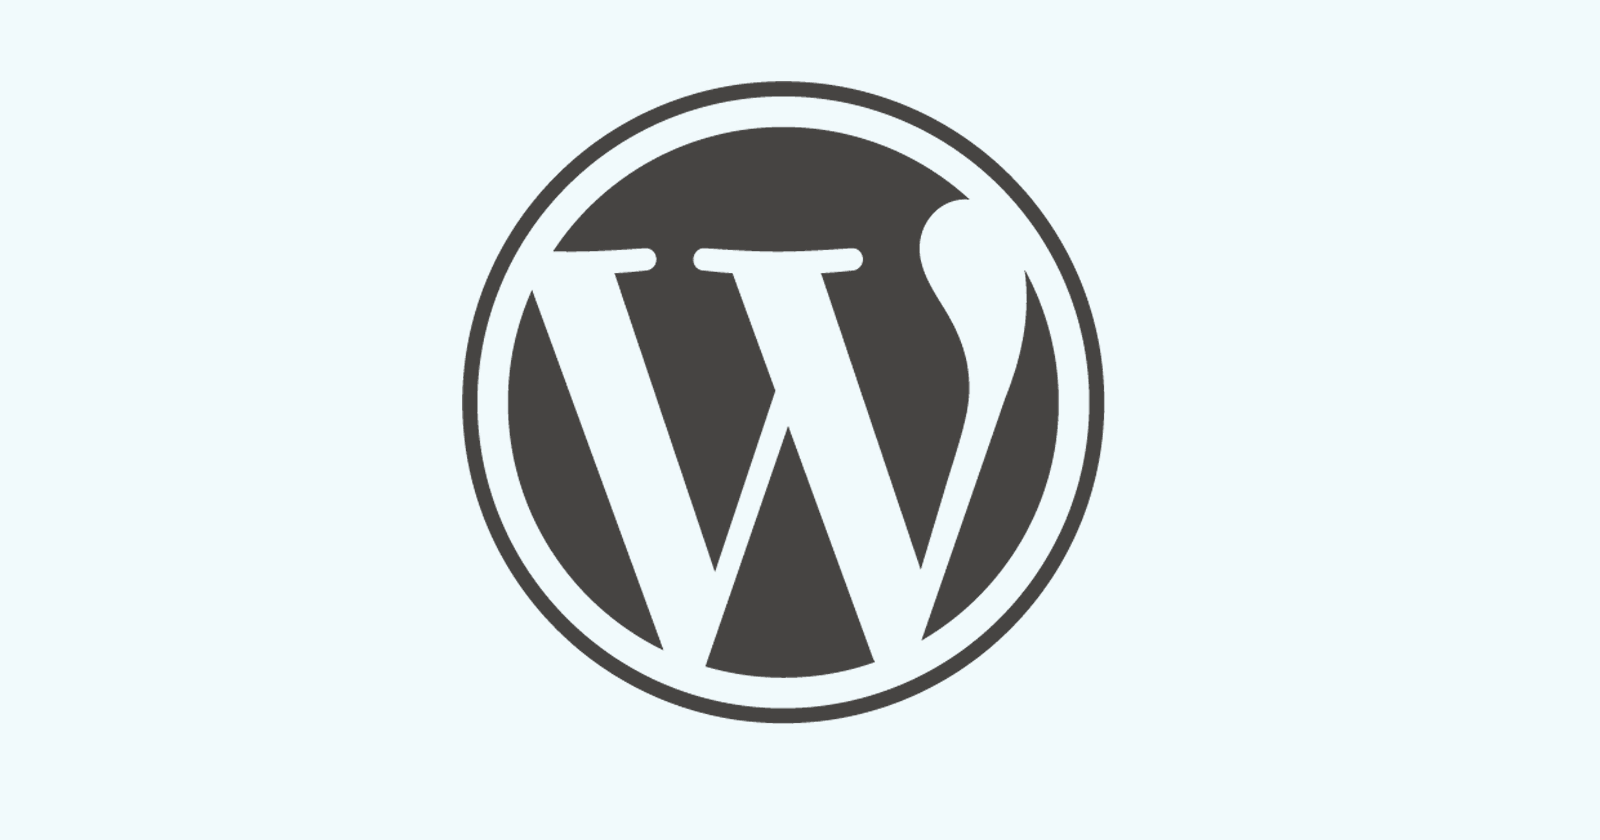 WordPress 5.8 Will Be Faster with WebP Support via @sejournal, @martinibuster